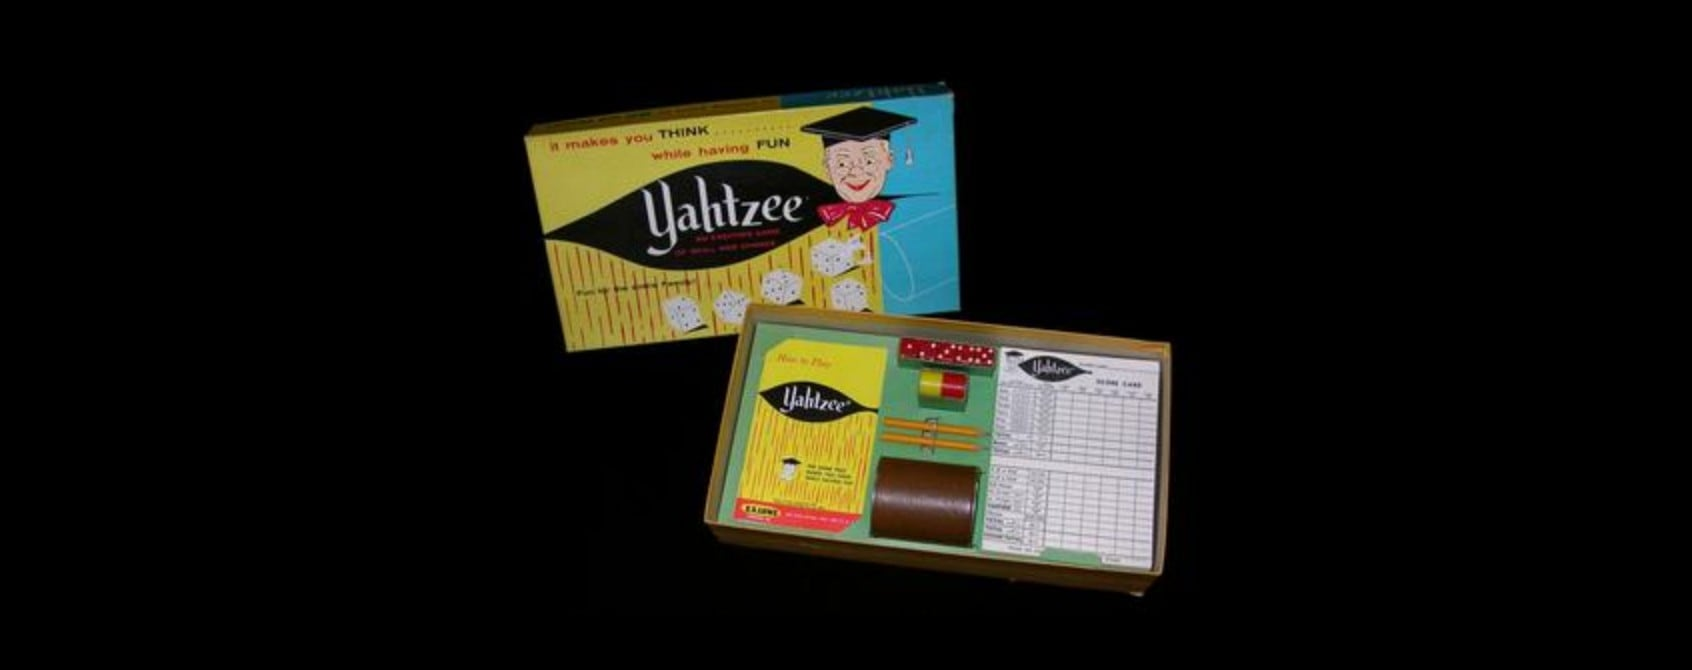 Yahtzee invented in Canada